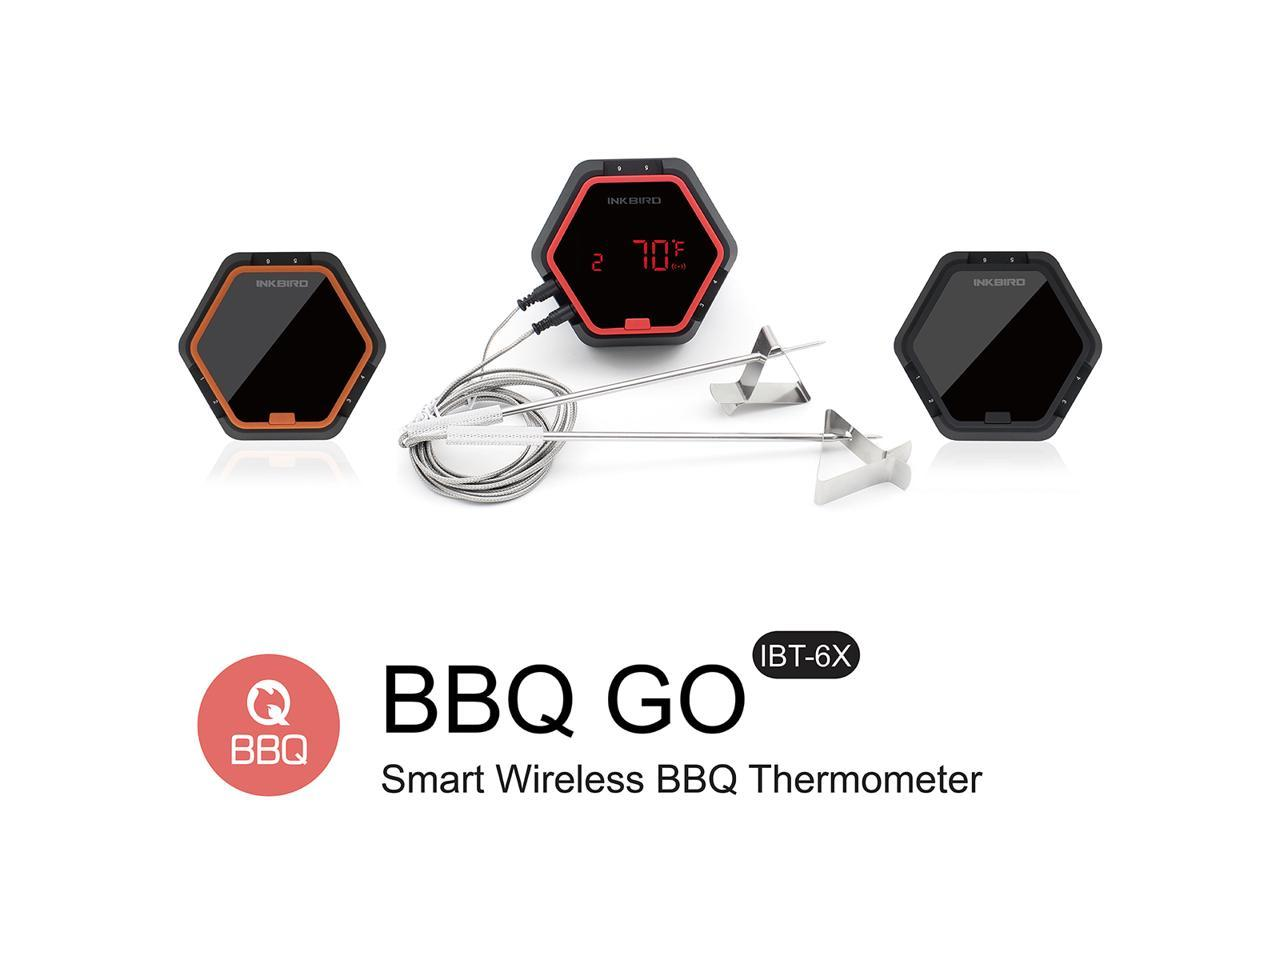 PROBE for Inkbird meat cooking thermometer 2x 4x 6x sensor replacement test